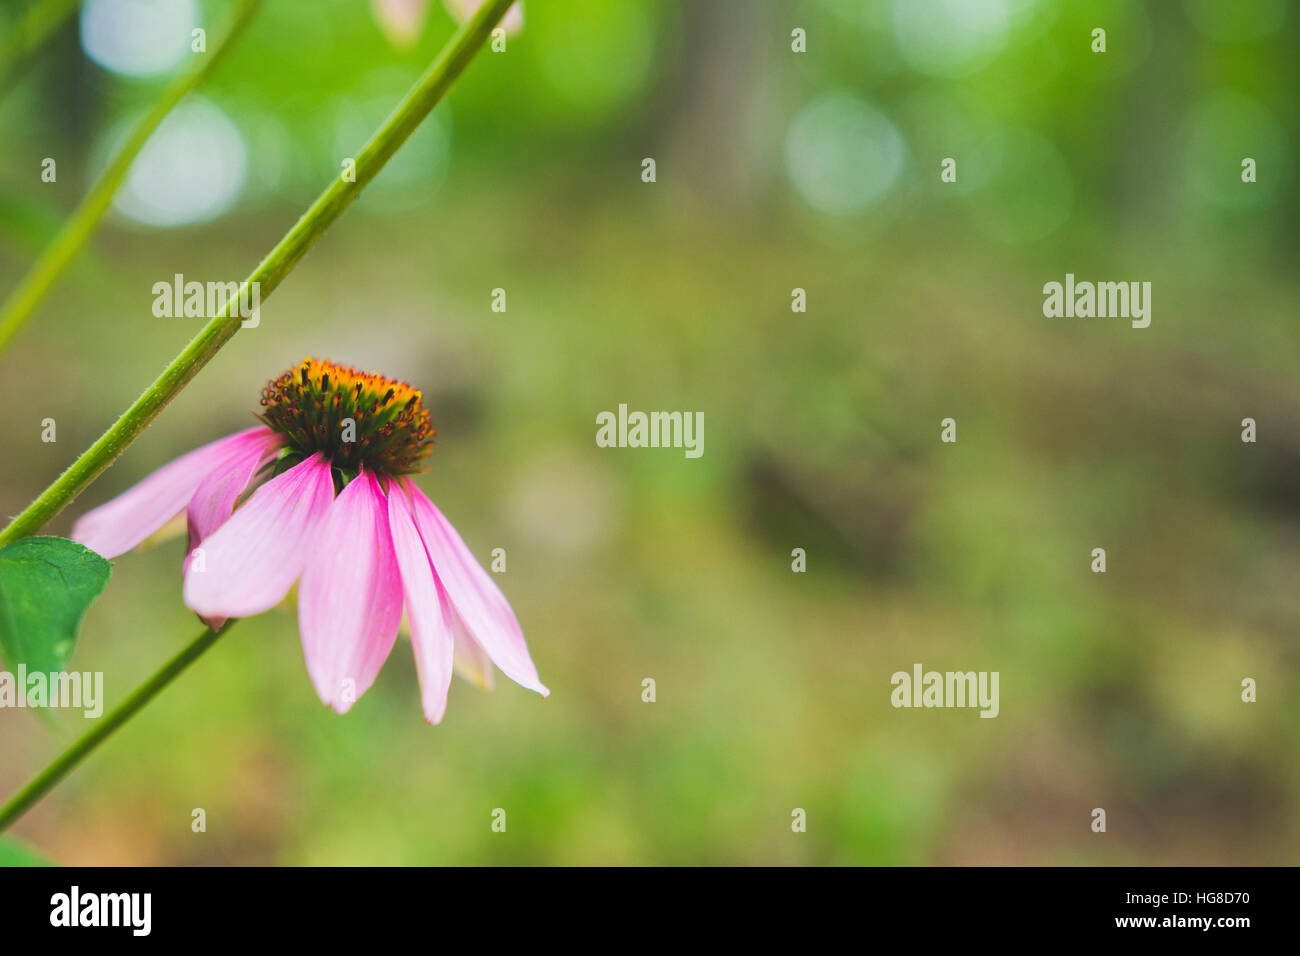 Close-up of eastern purple coneflower - Stock Image